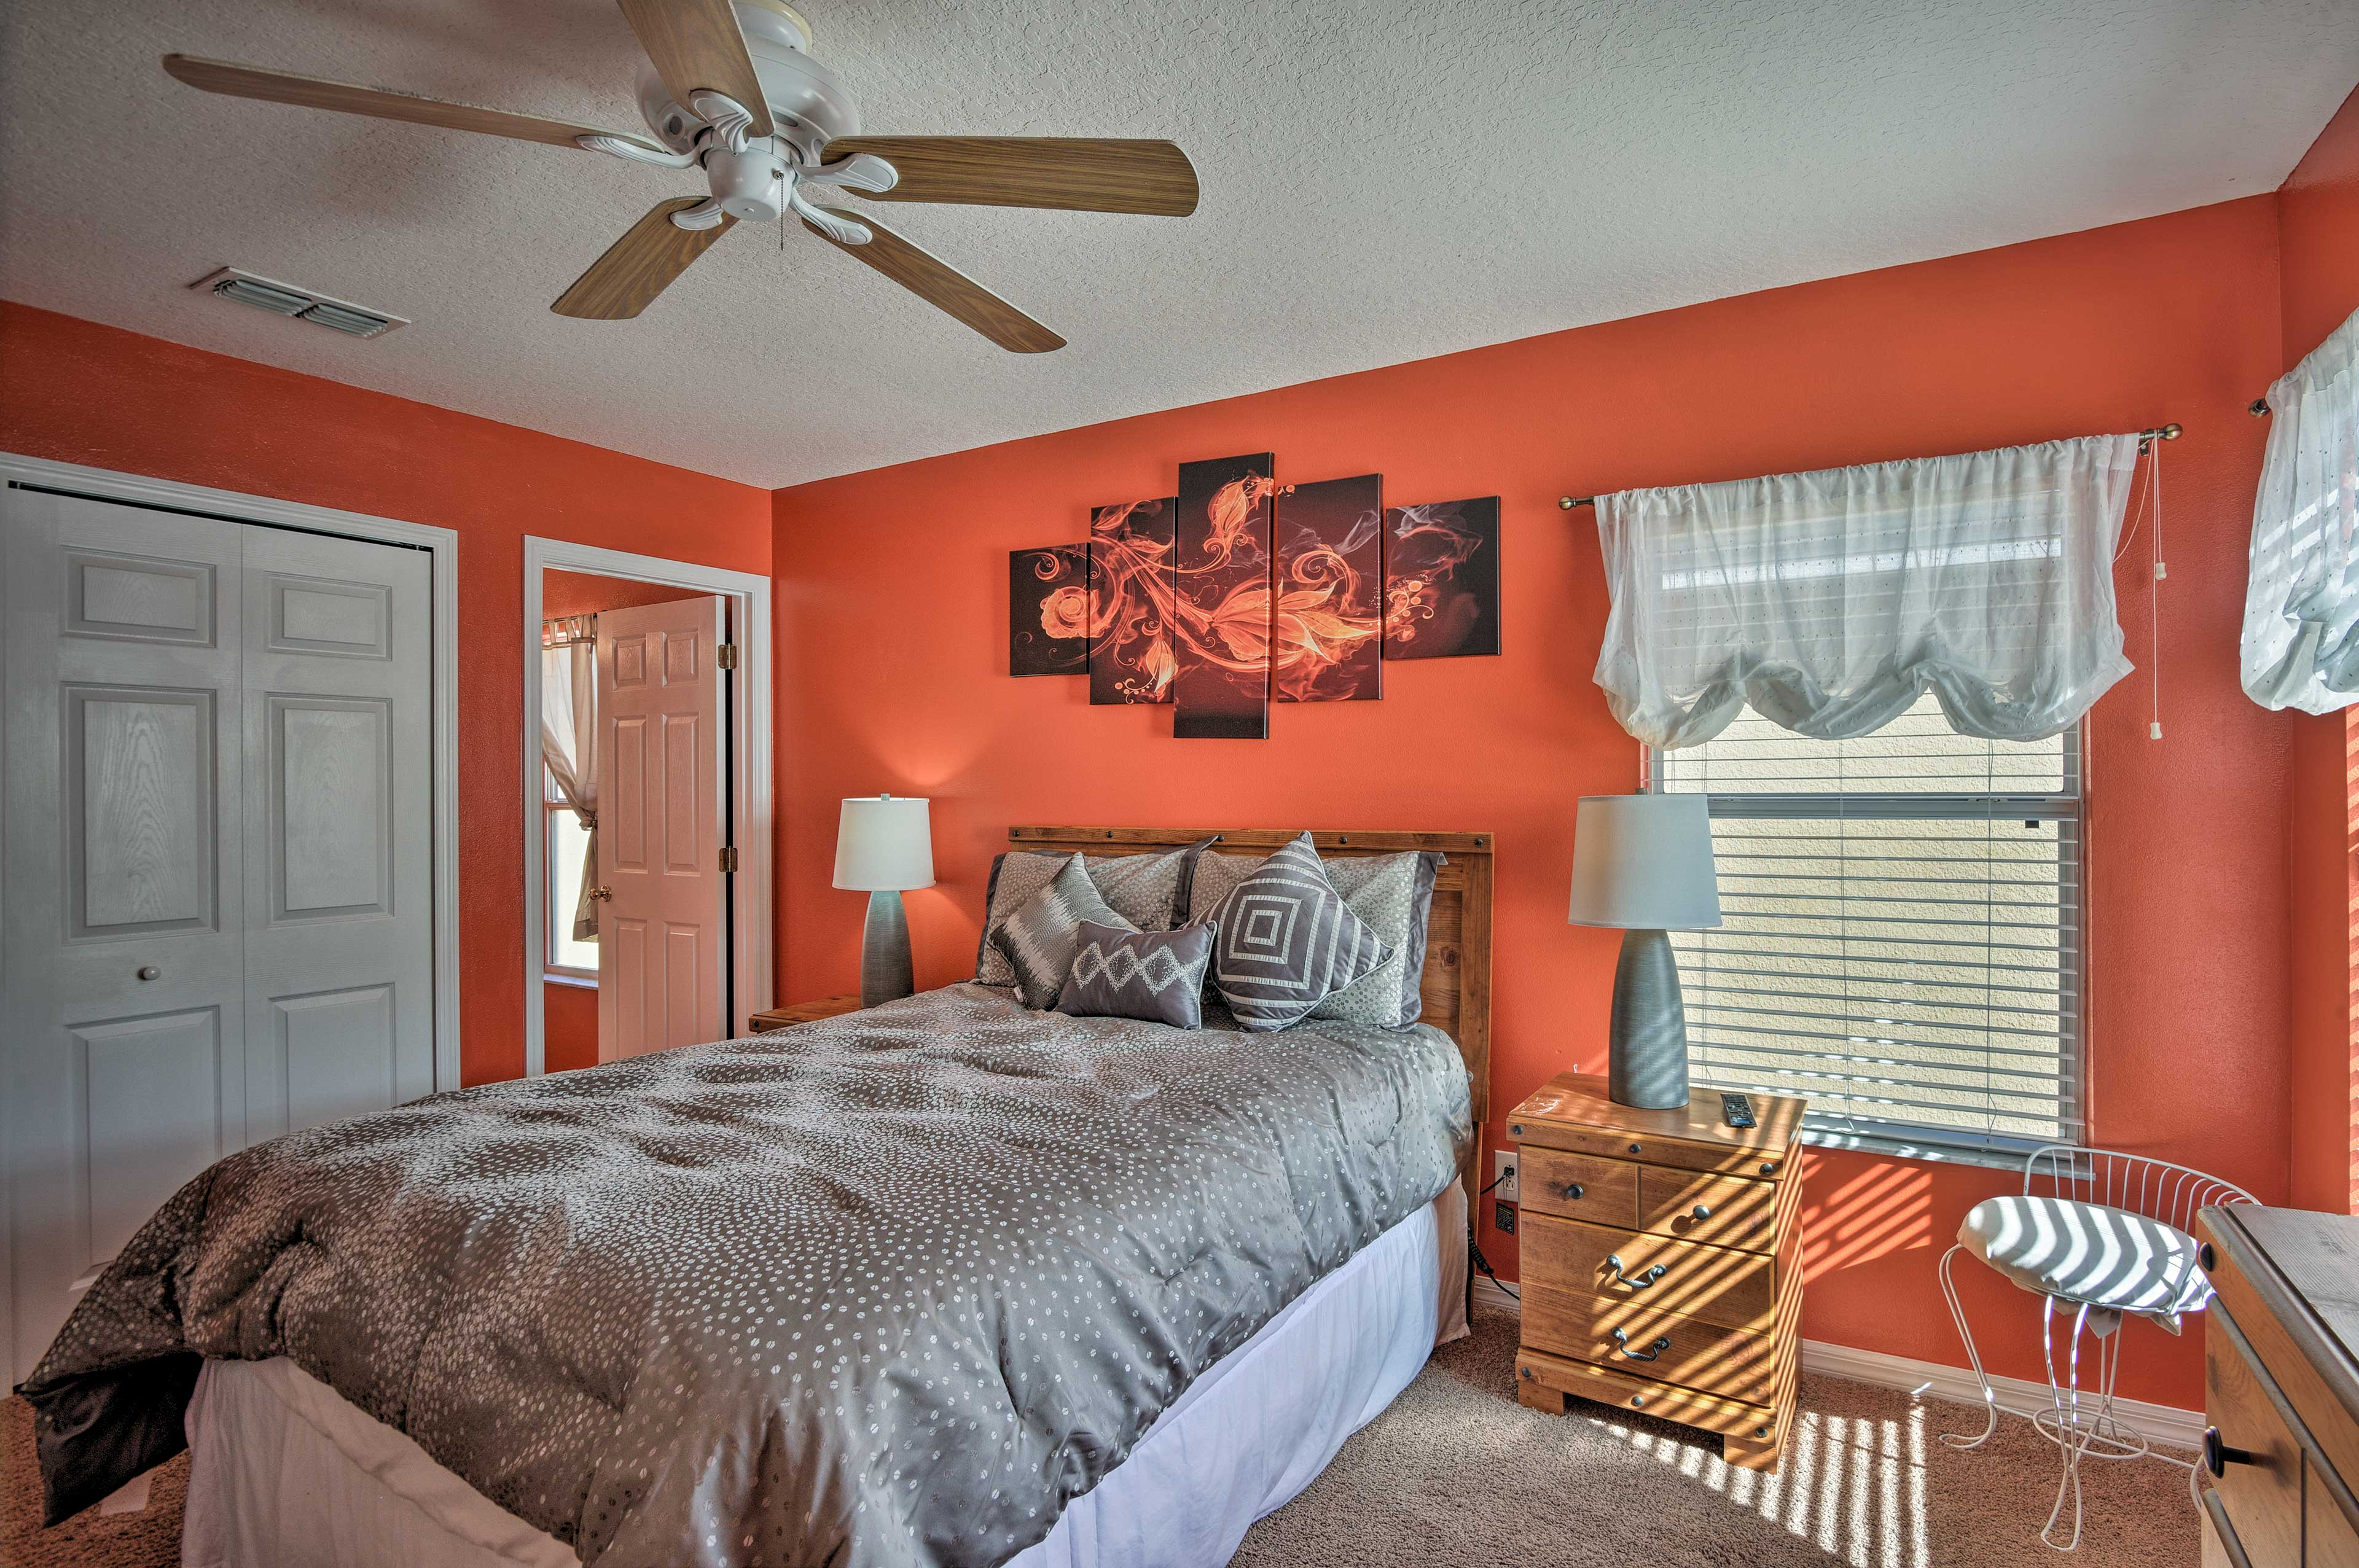 Let the breeze from the ceiling fan lull you to sleep.